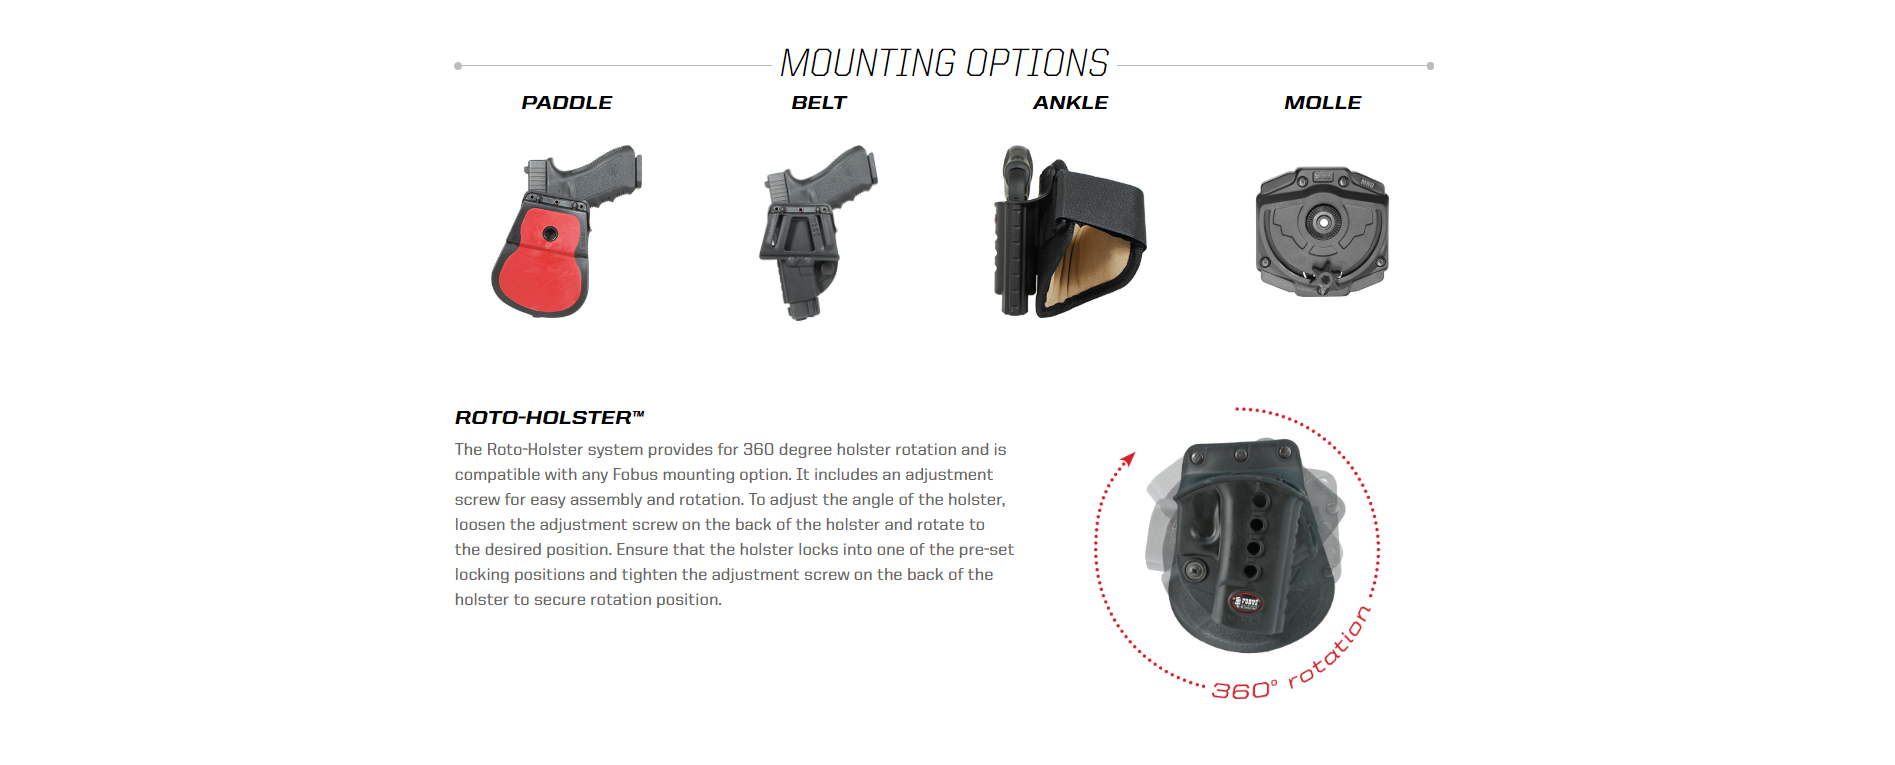 FOBUS MOUNTING OPTIONS